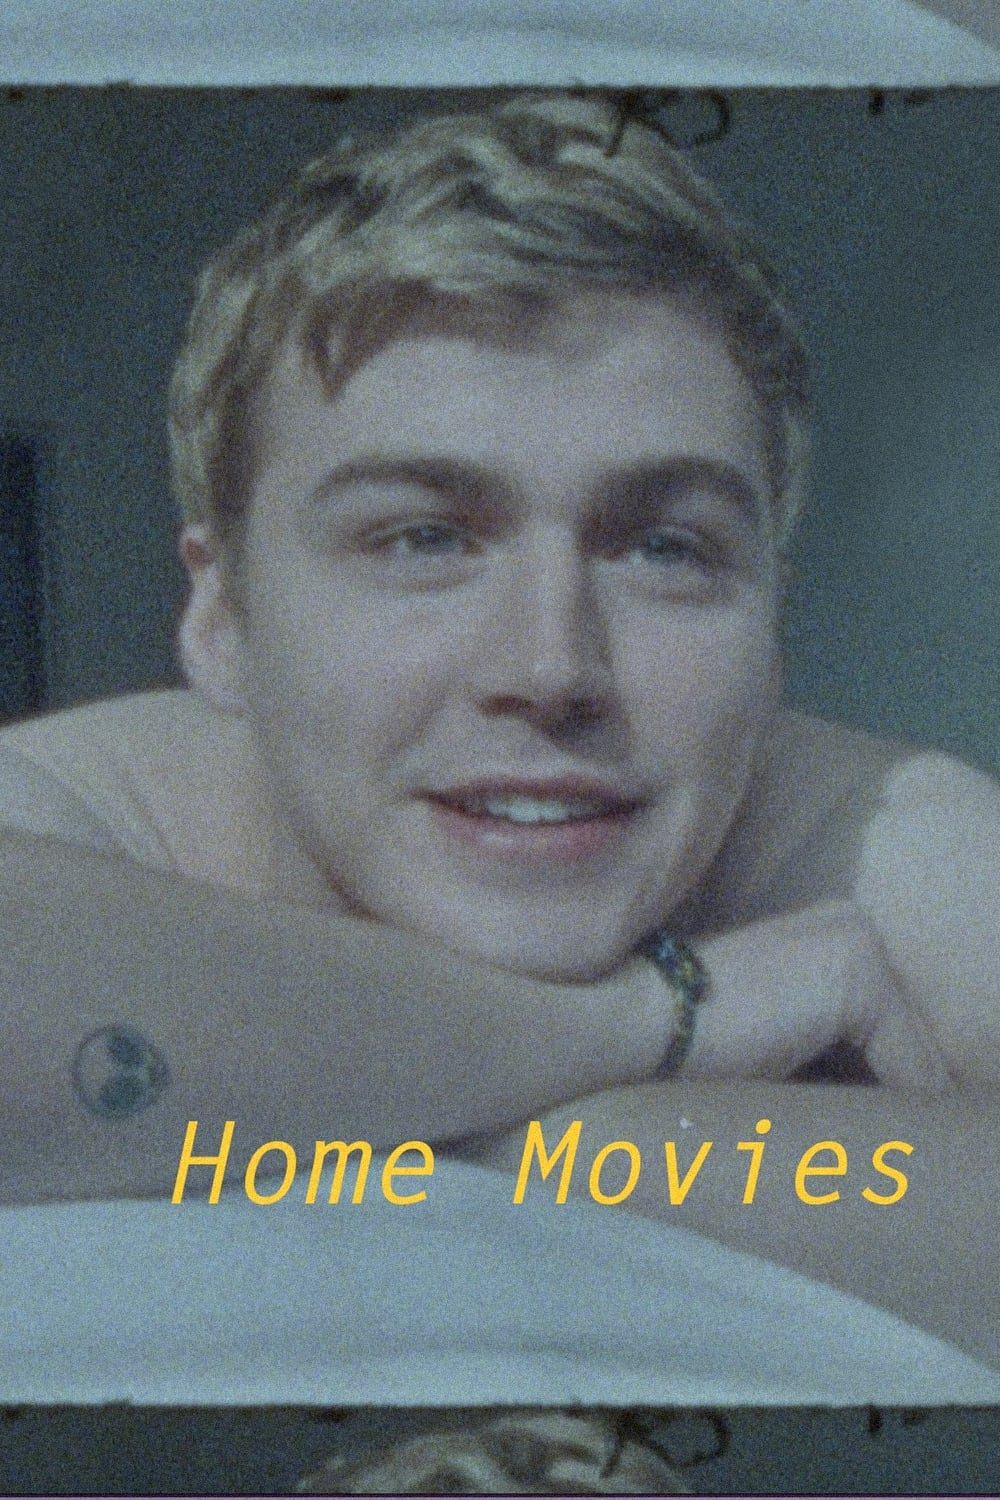 watch Home Movies 2017 online free